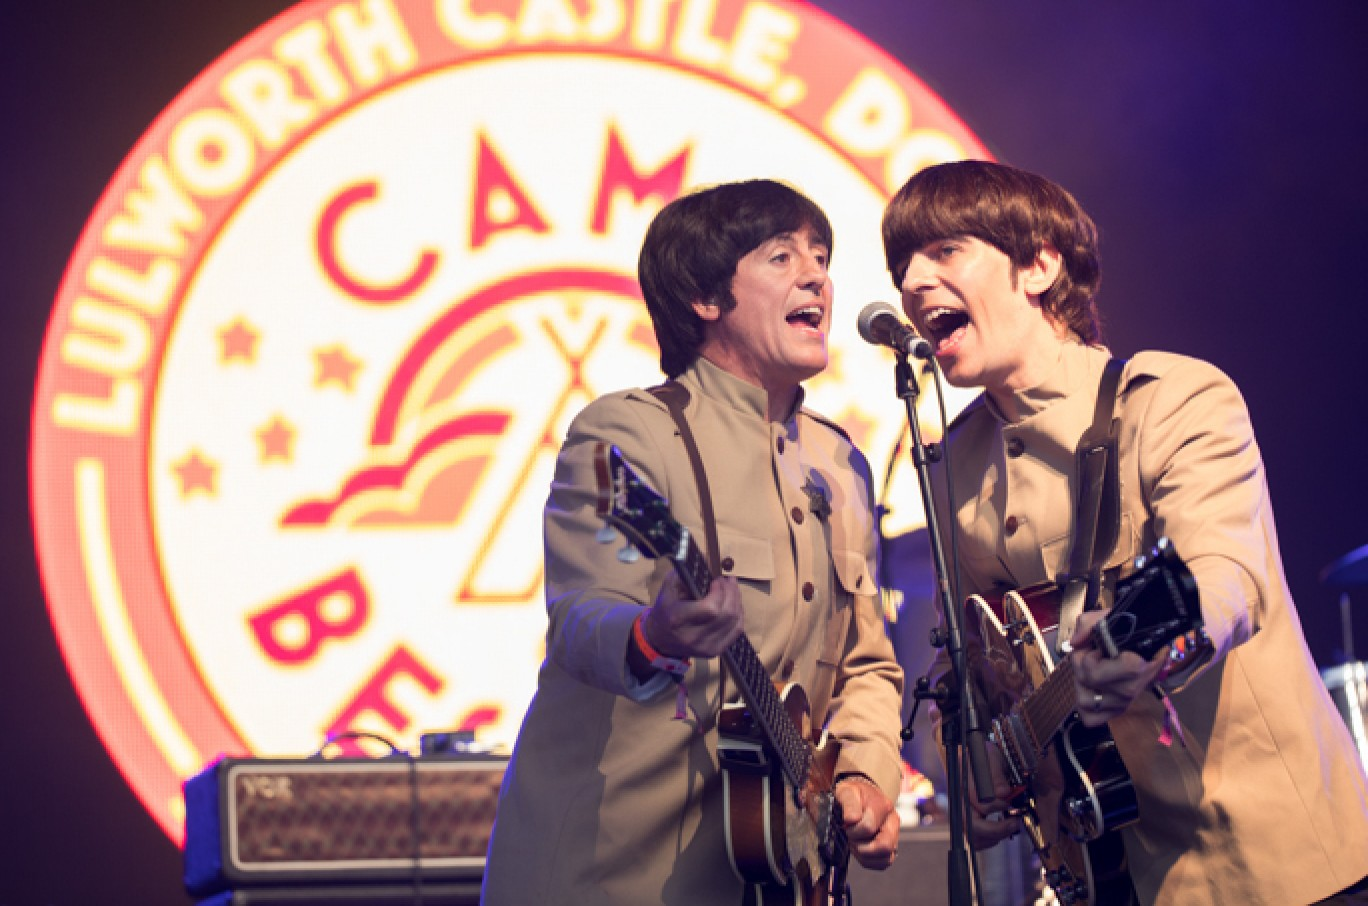 6_89-camp-bestival-2017-the-bootleg-beatles-vf-vic_50541501585059